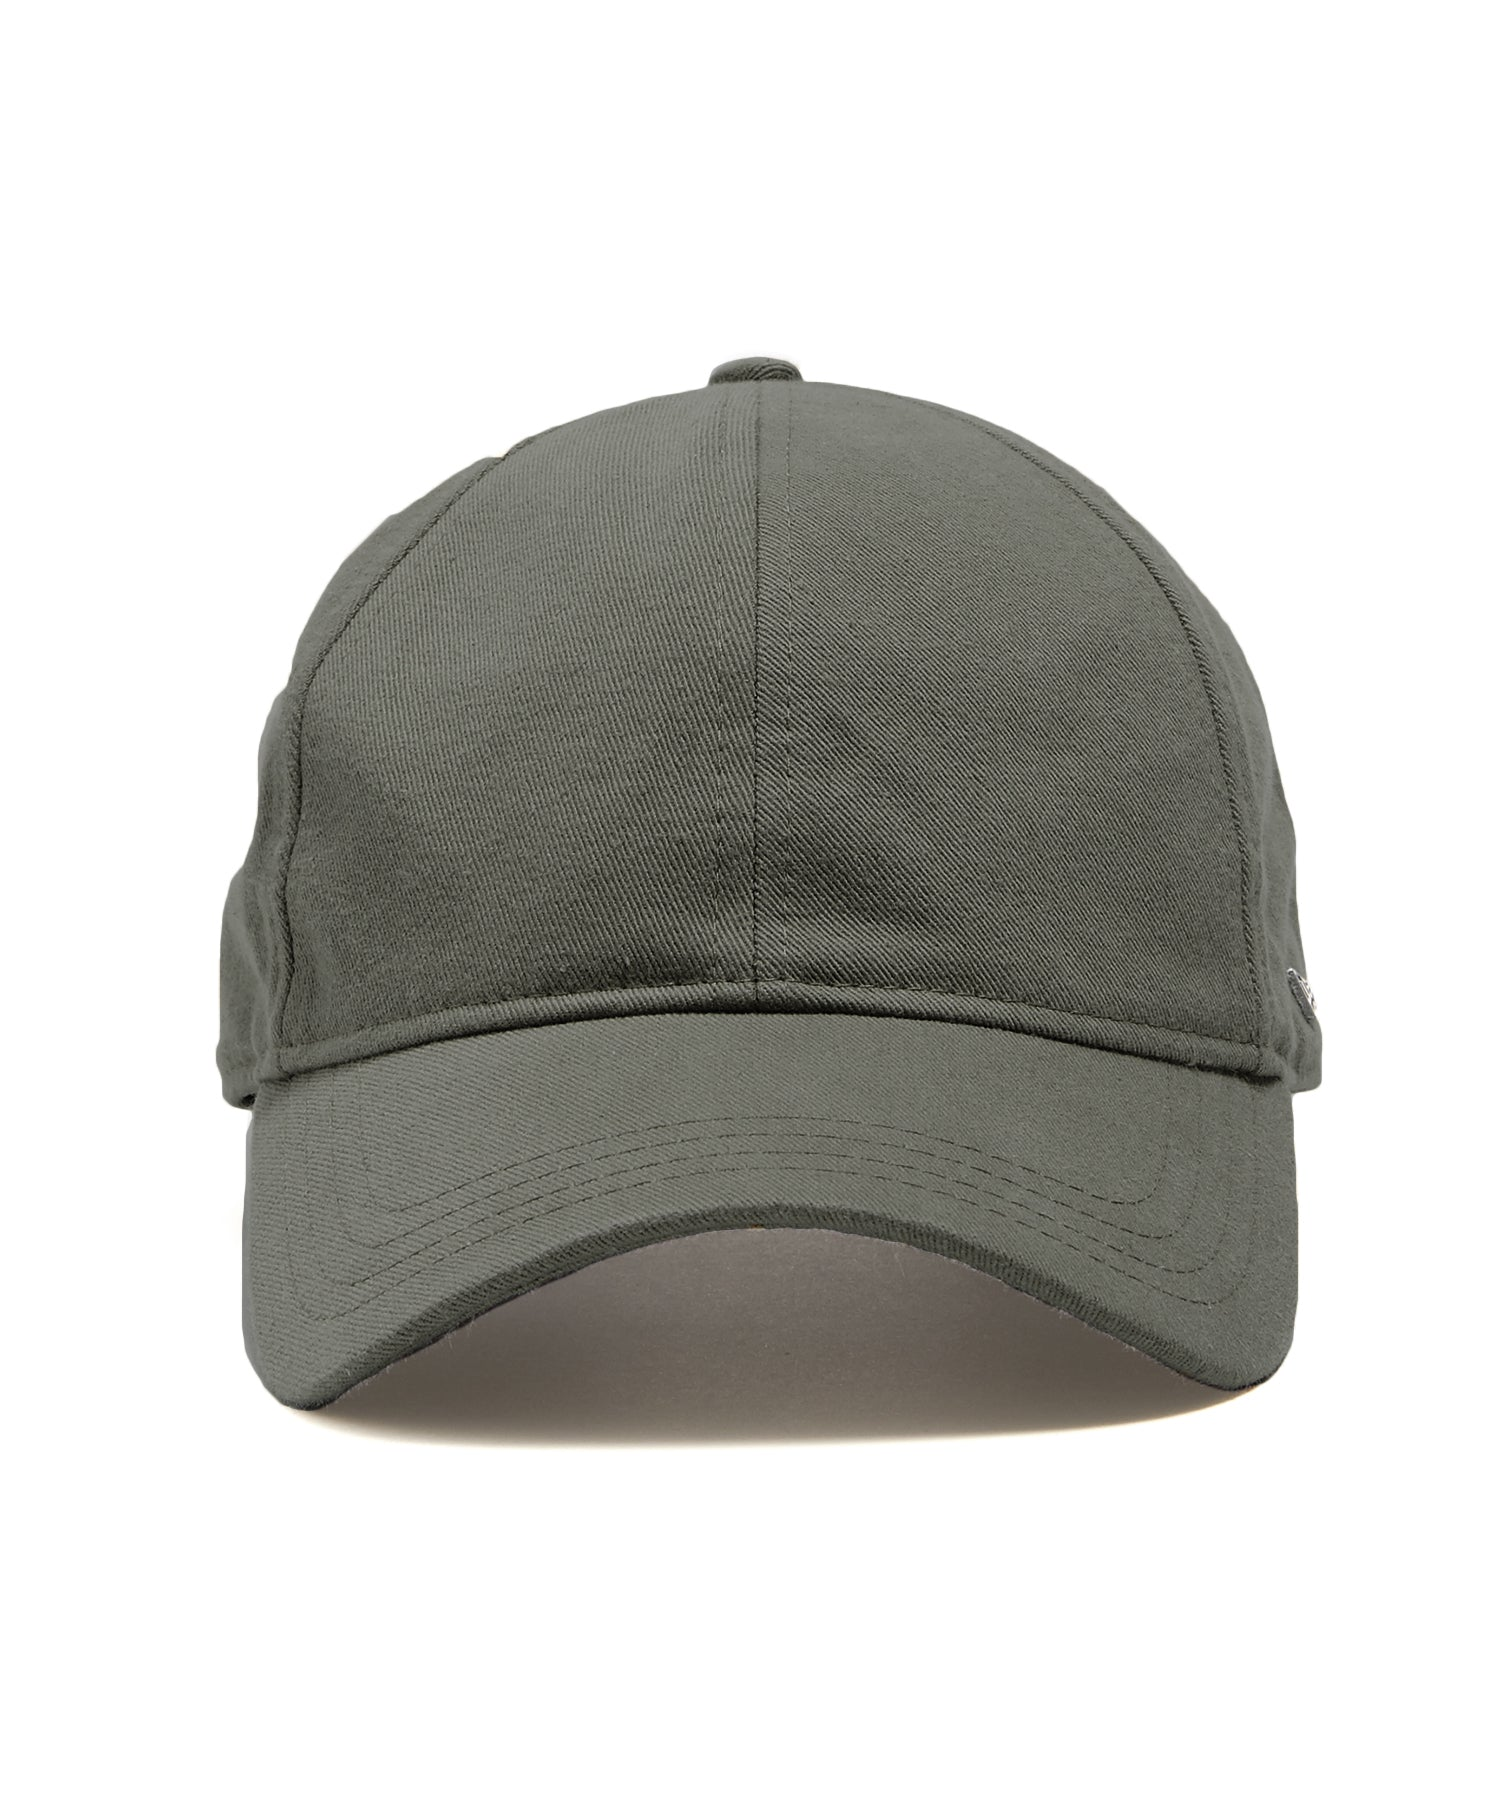 Todd Snyder + New Era Selvedge Chino Dad Hat in Peat